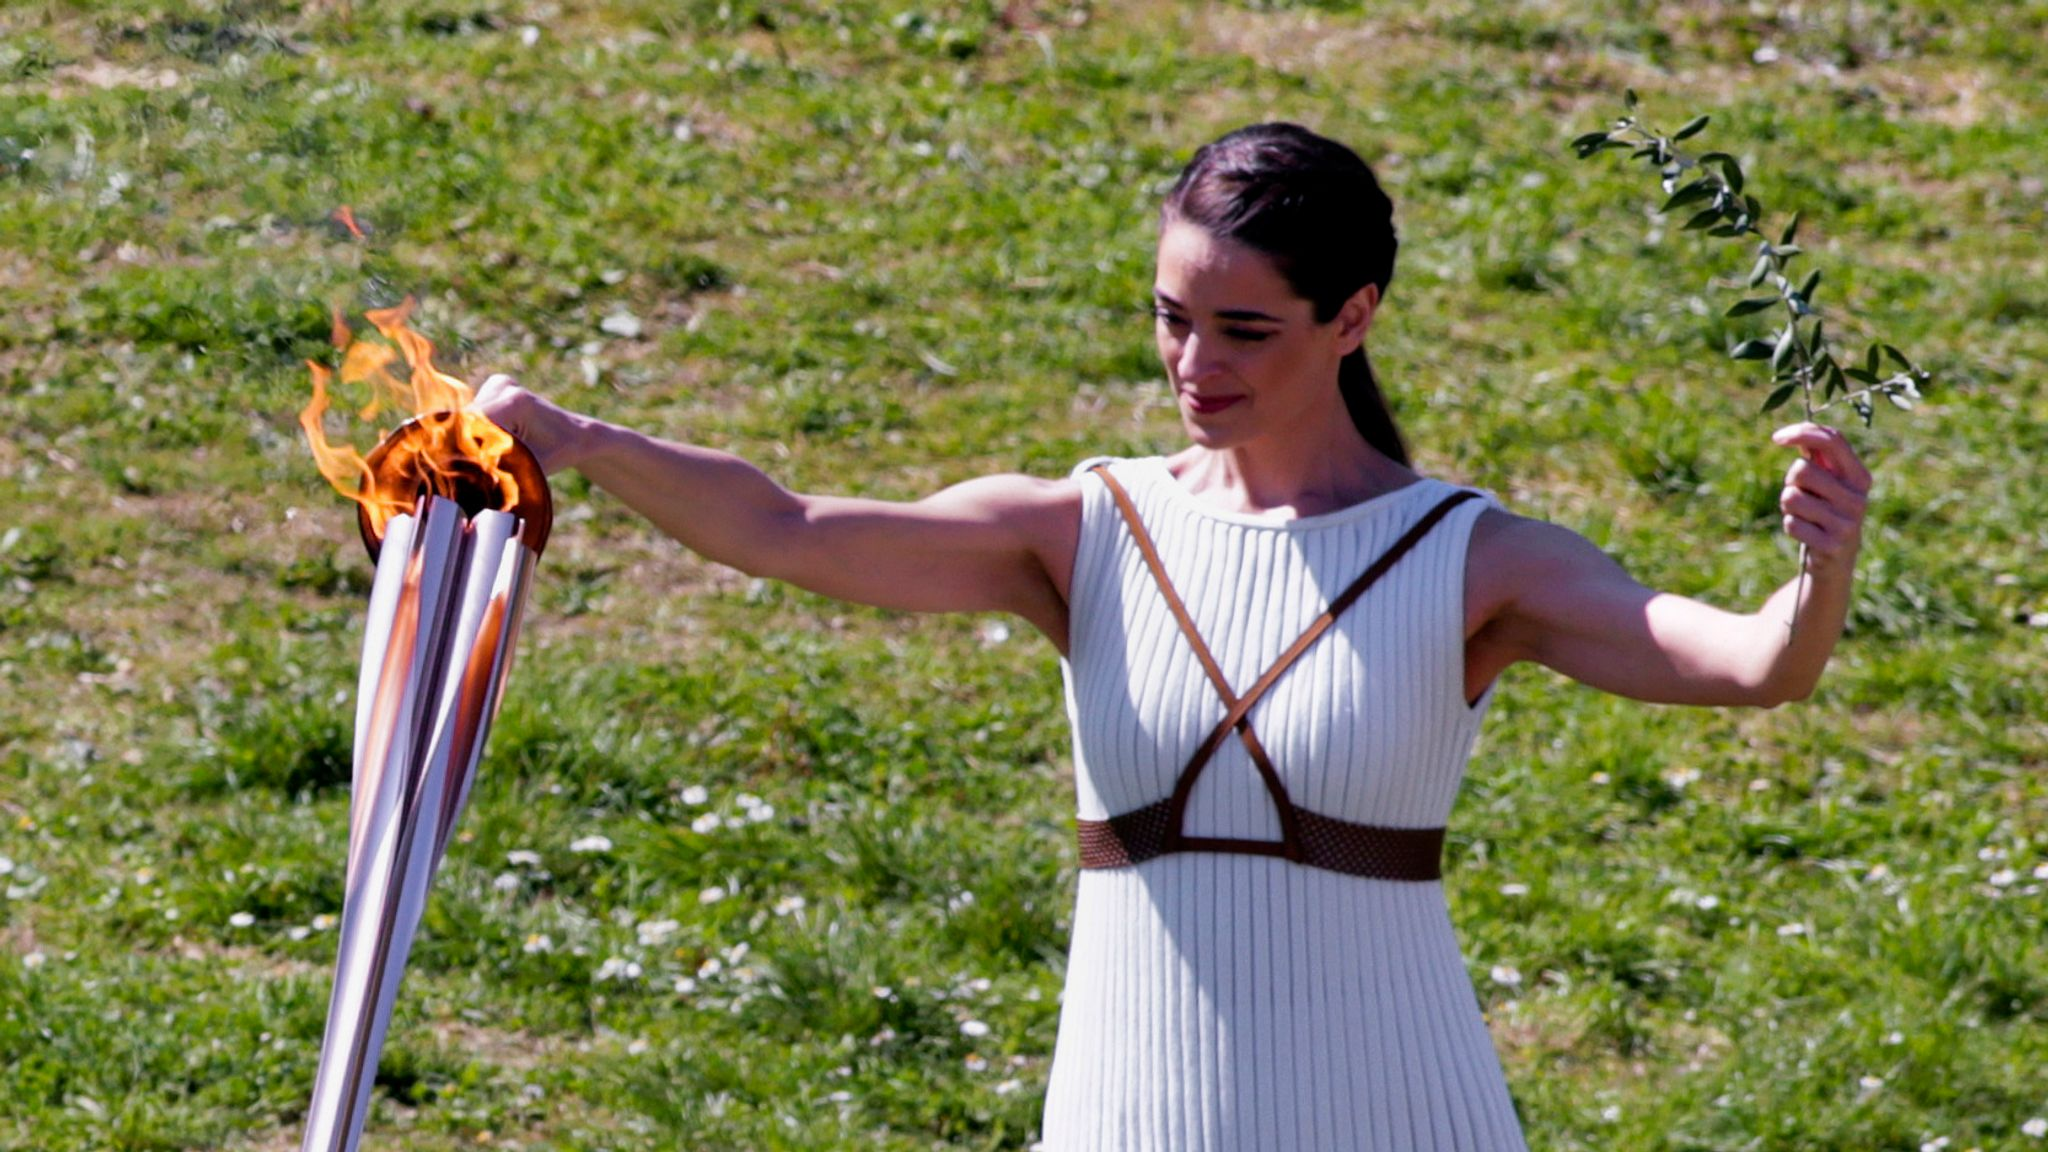 Olympic torch lighting 2021 betting odds clubcoin crypto currency